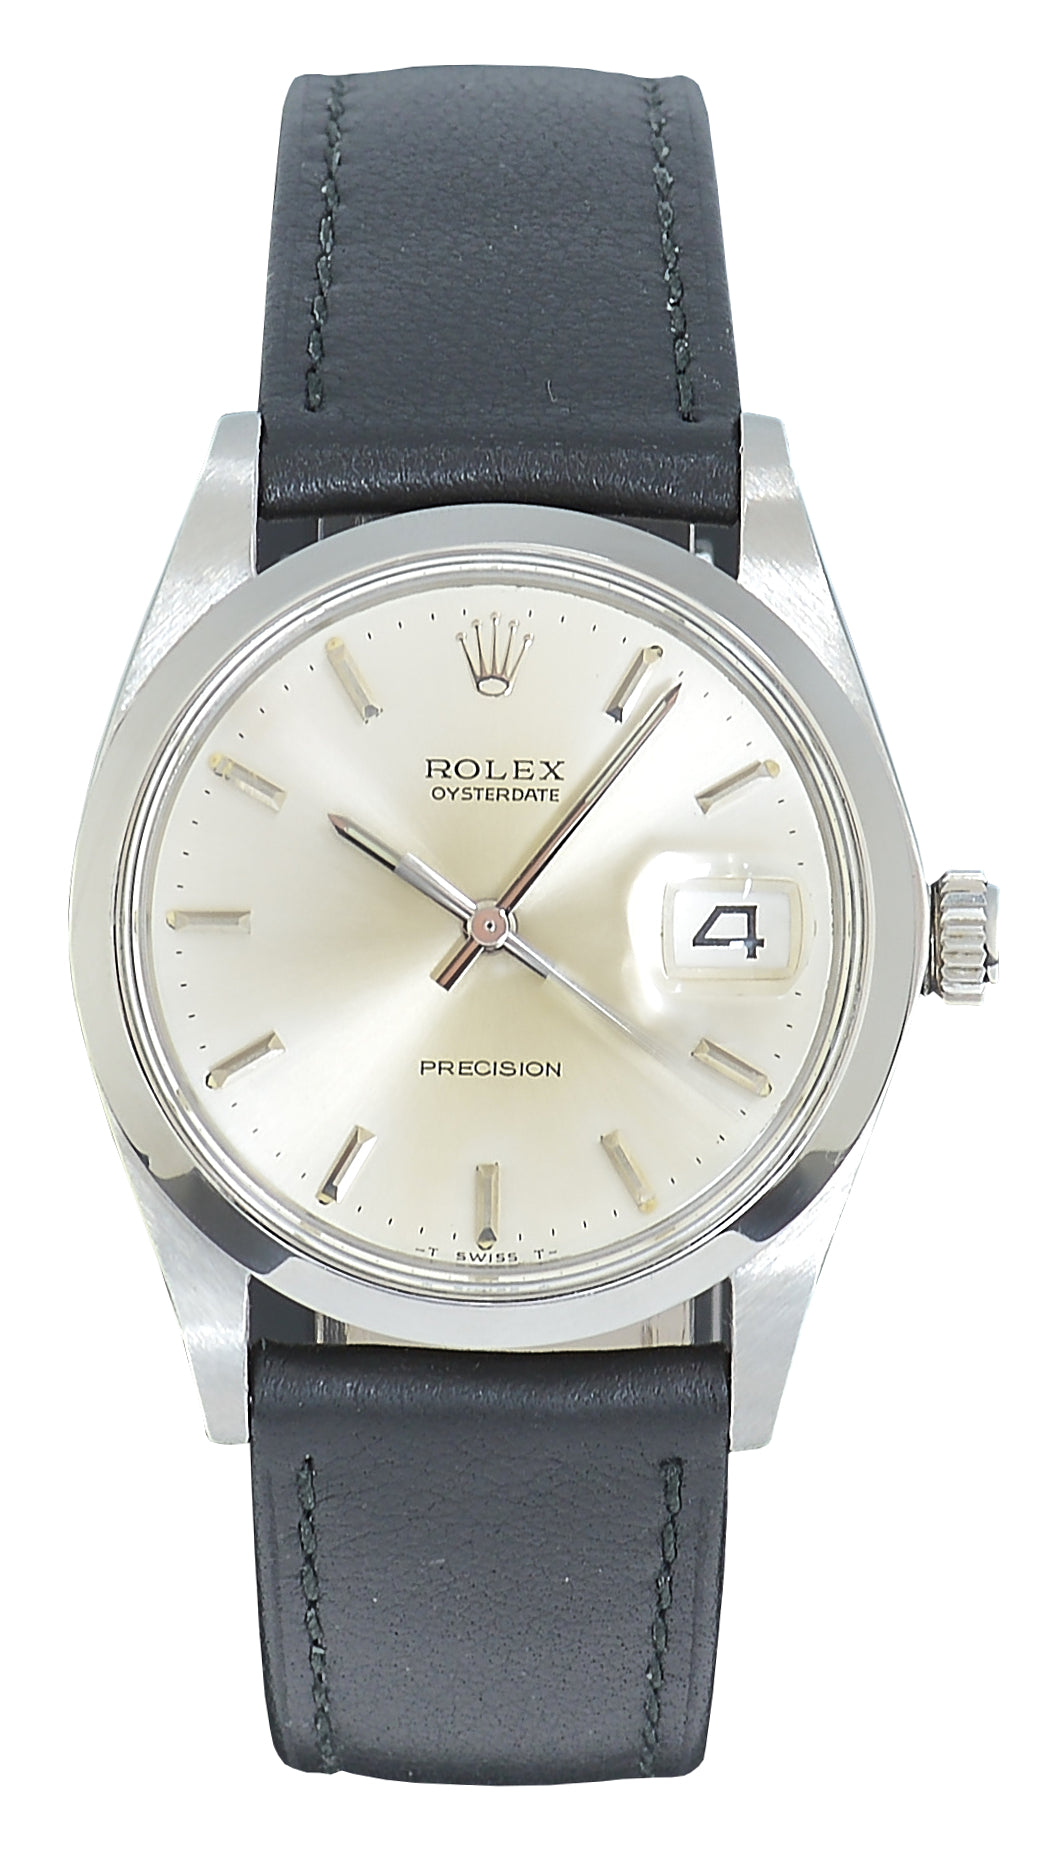 Rolex Oysterdate Steel Watch with Silver Dial, Ref: 6694 (1971)